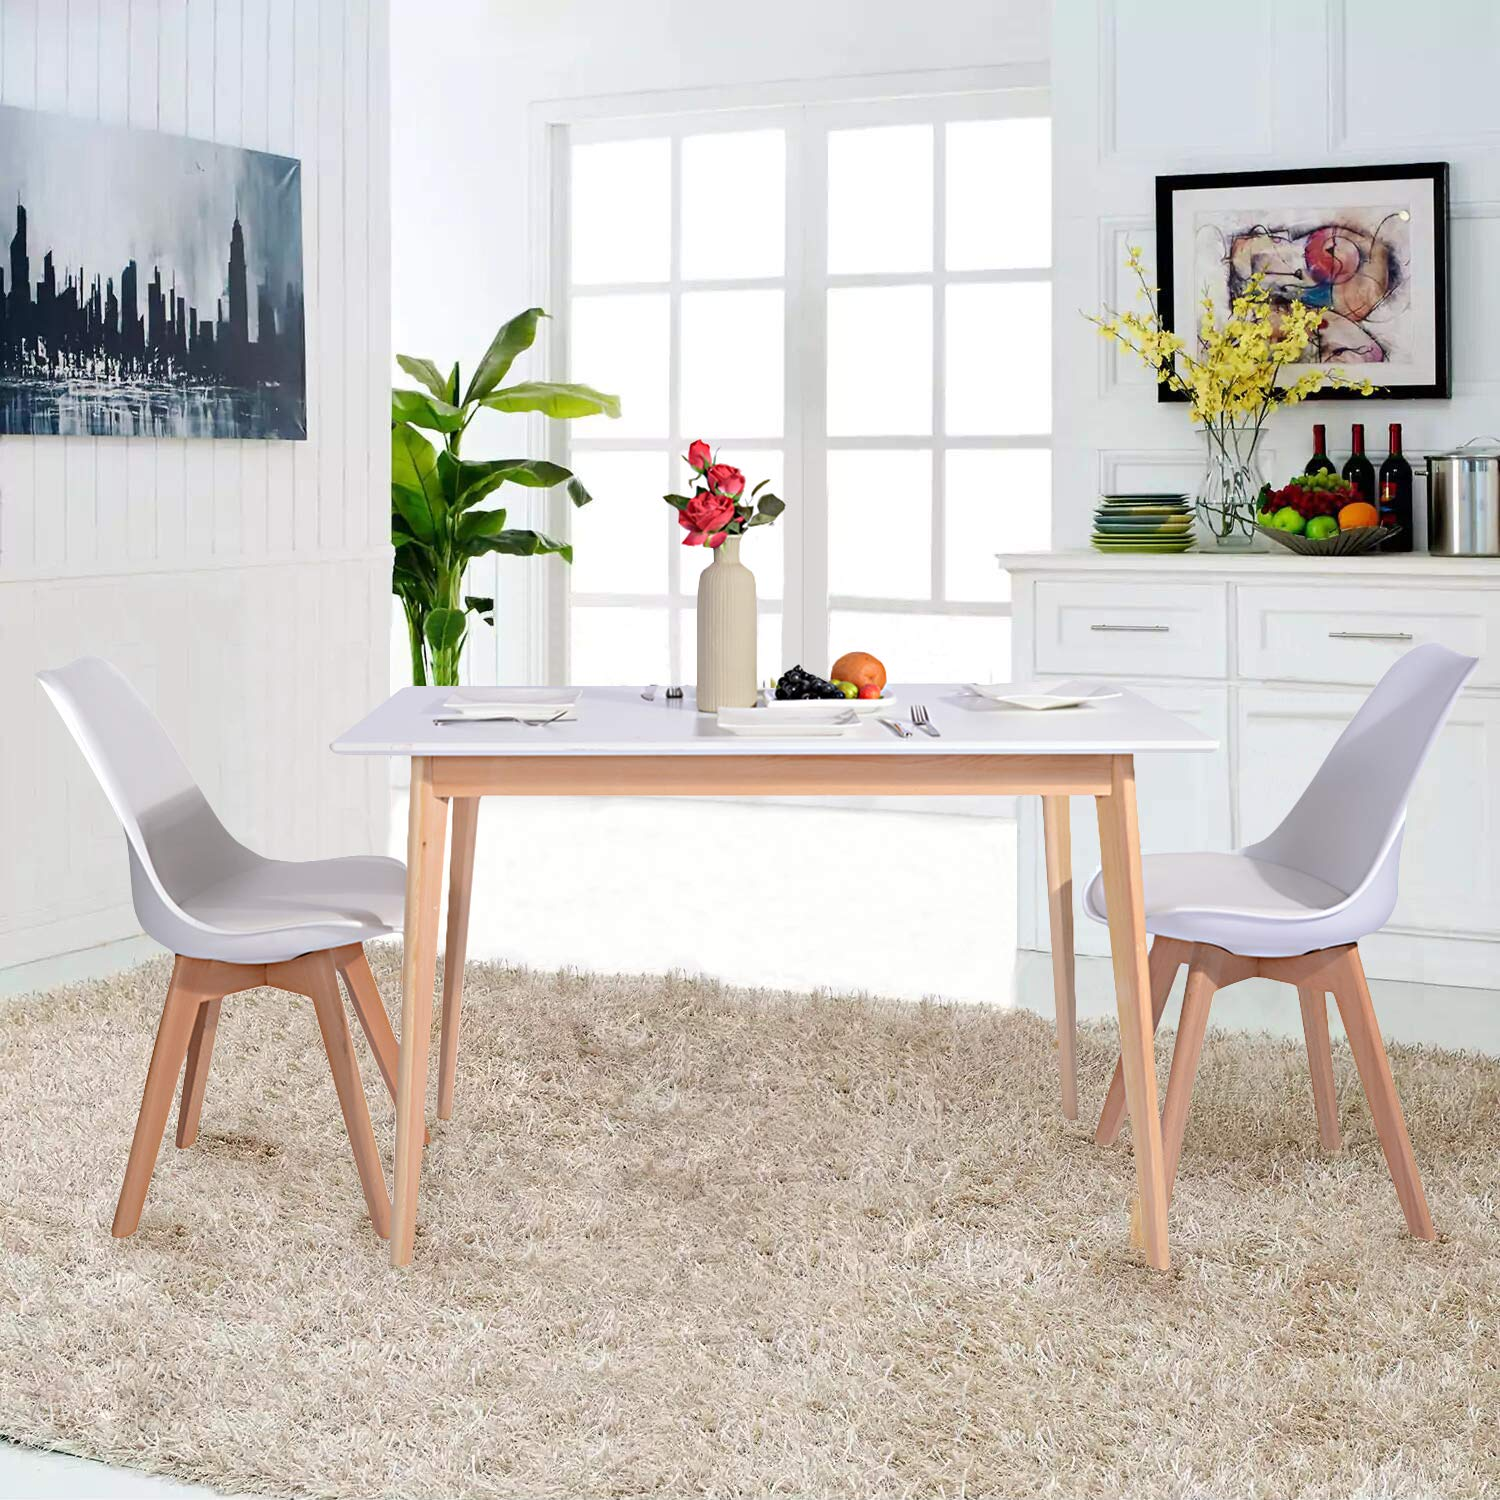 GreenForest Dining Table Mid Century Modern Rectangular Kitchen Leisure Table with Solid Wooden Legs 47.2'' x 27.6''x 30'', White by GreenForest (Image #7)